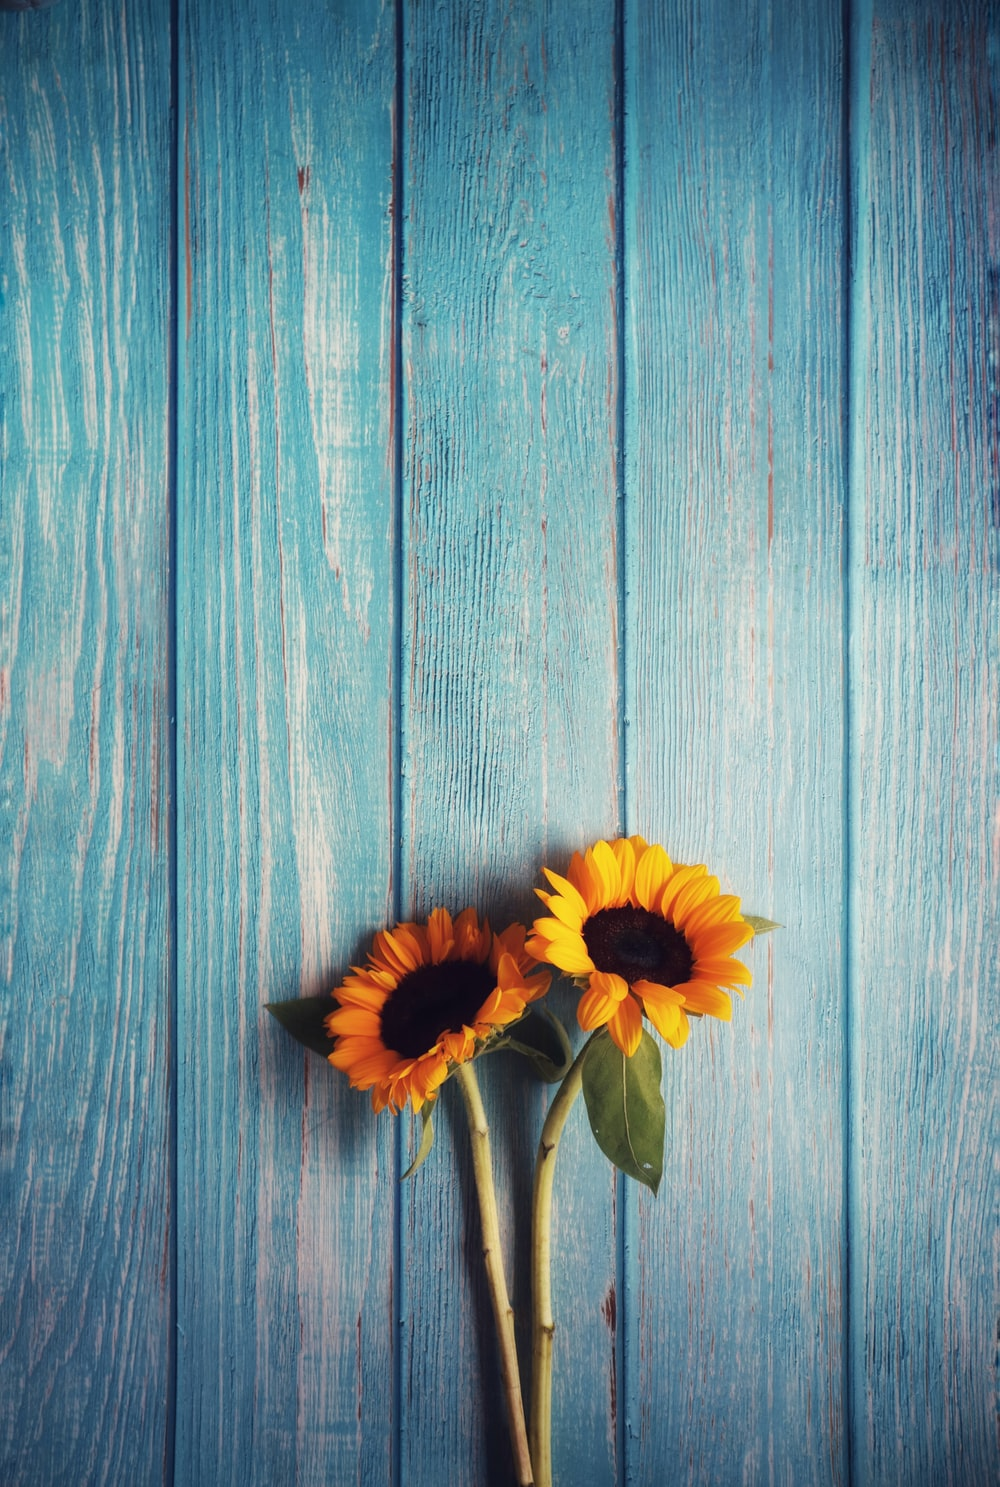 two yellow sunflowers on gray wooden surface